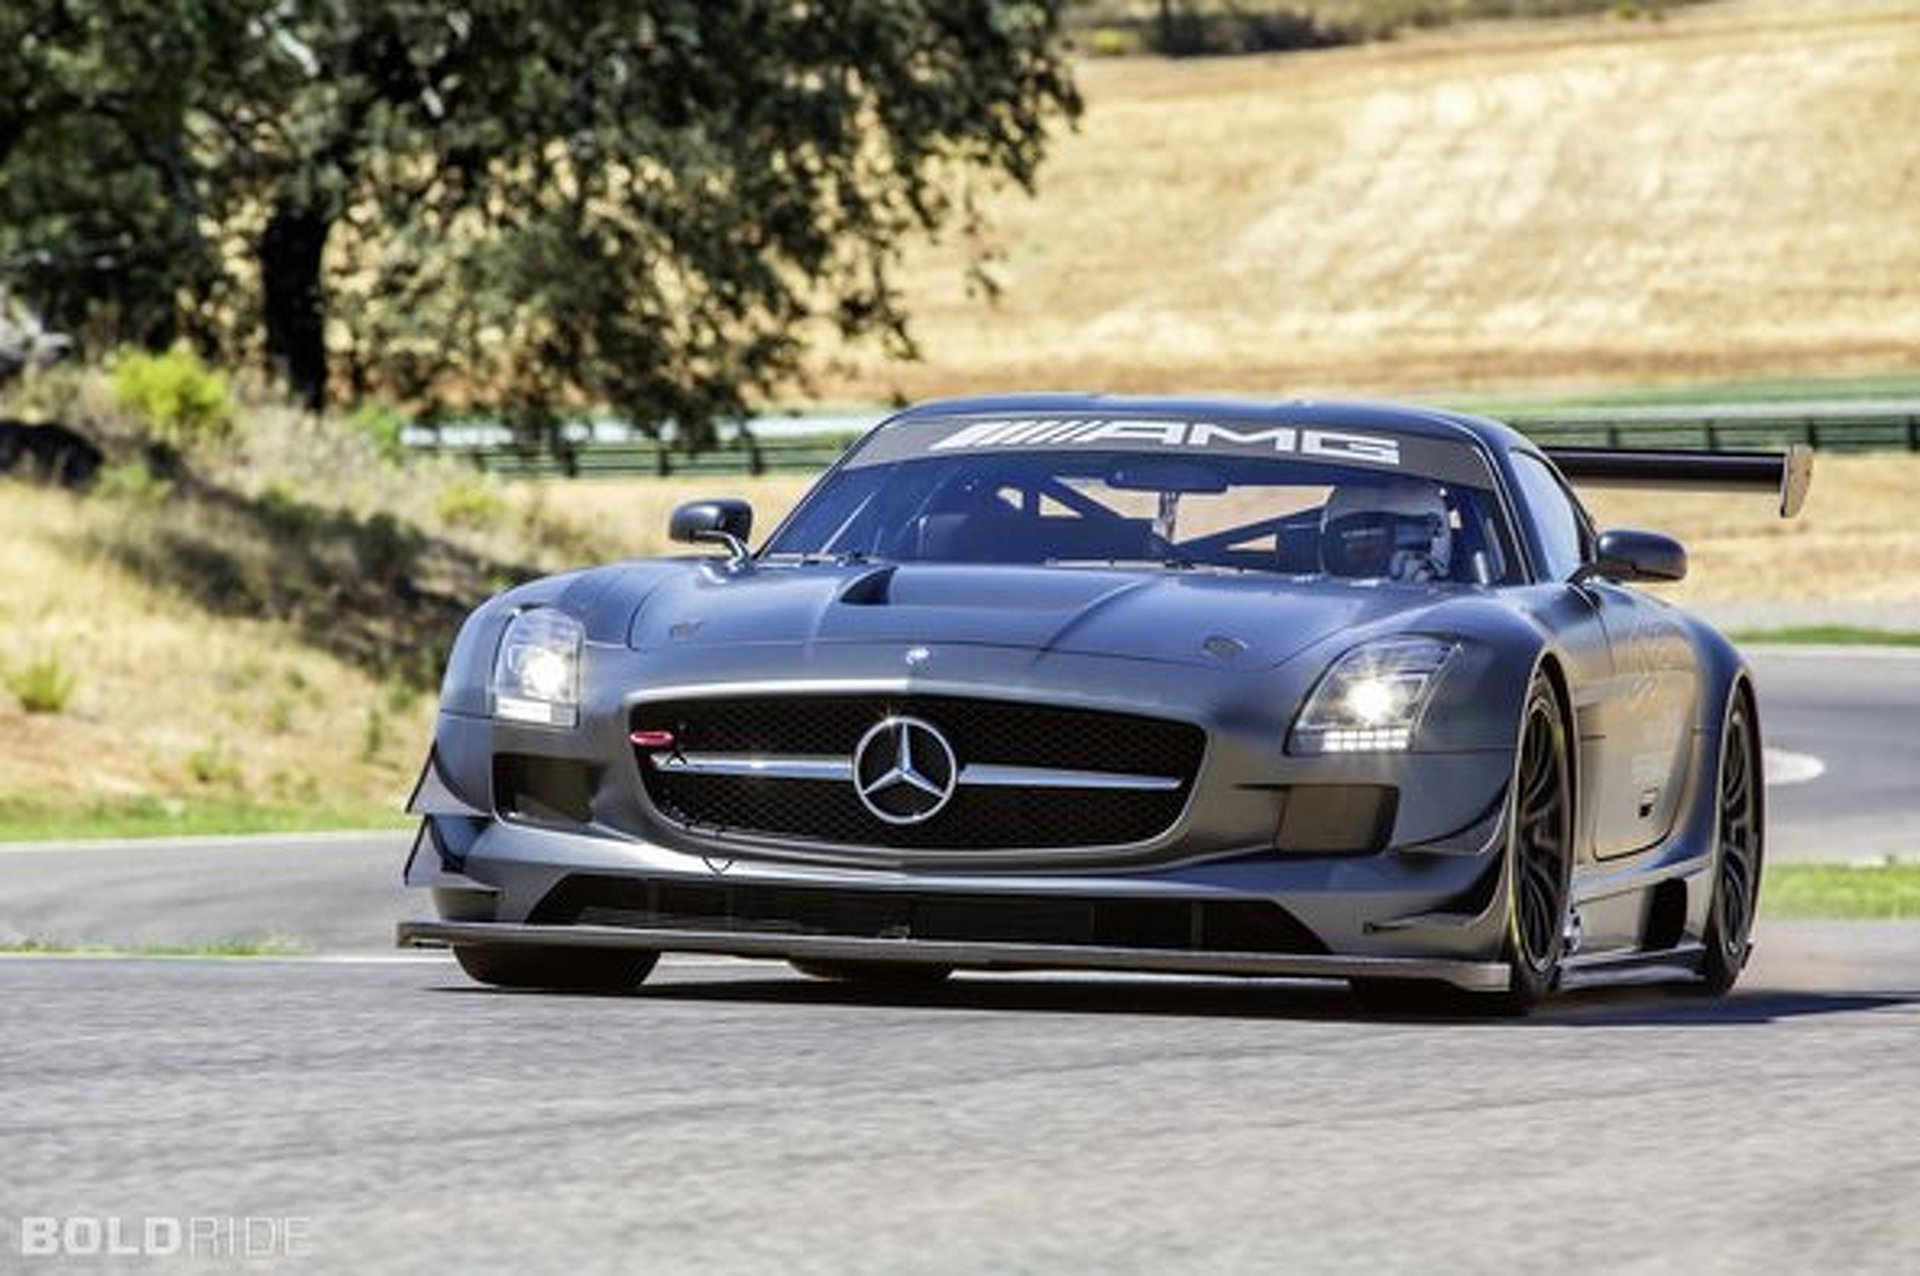 SLS AMG GT3 Brings Mercedes-Benz Back to Racing Glory